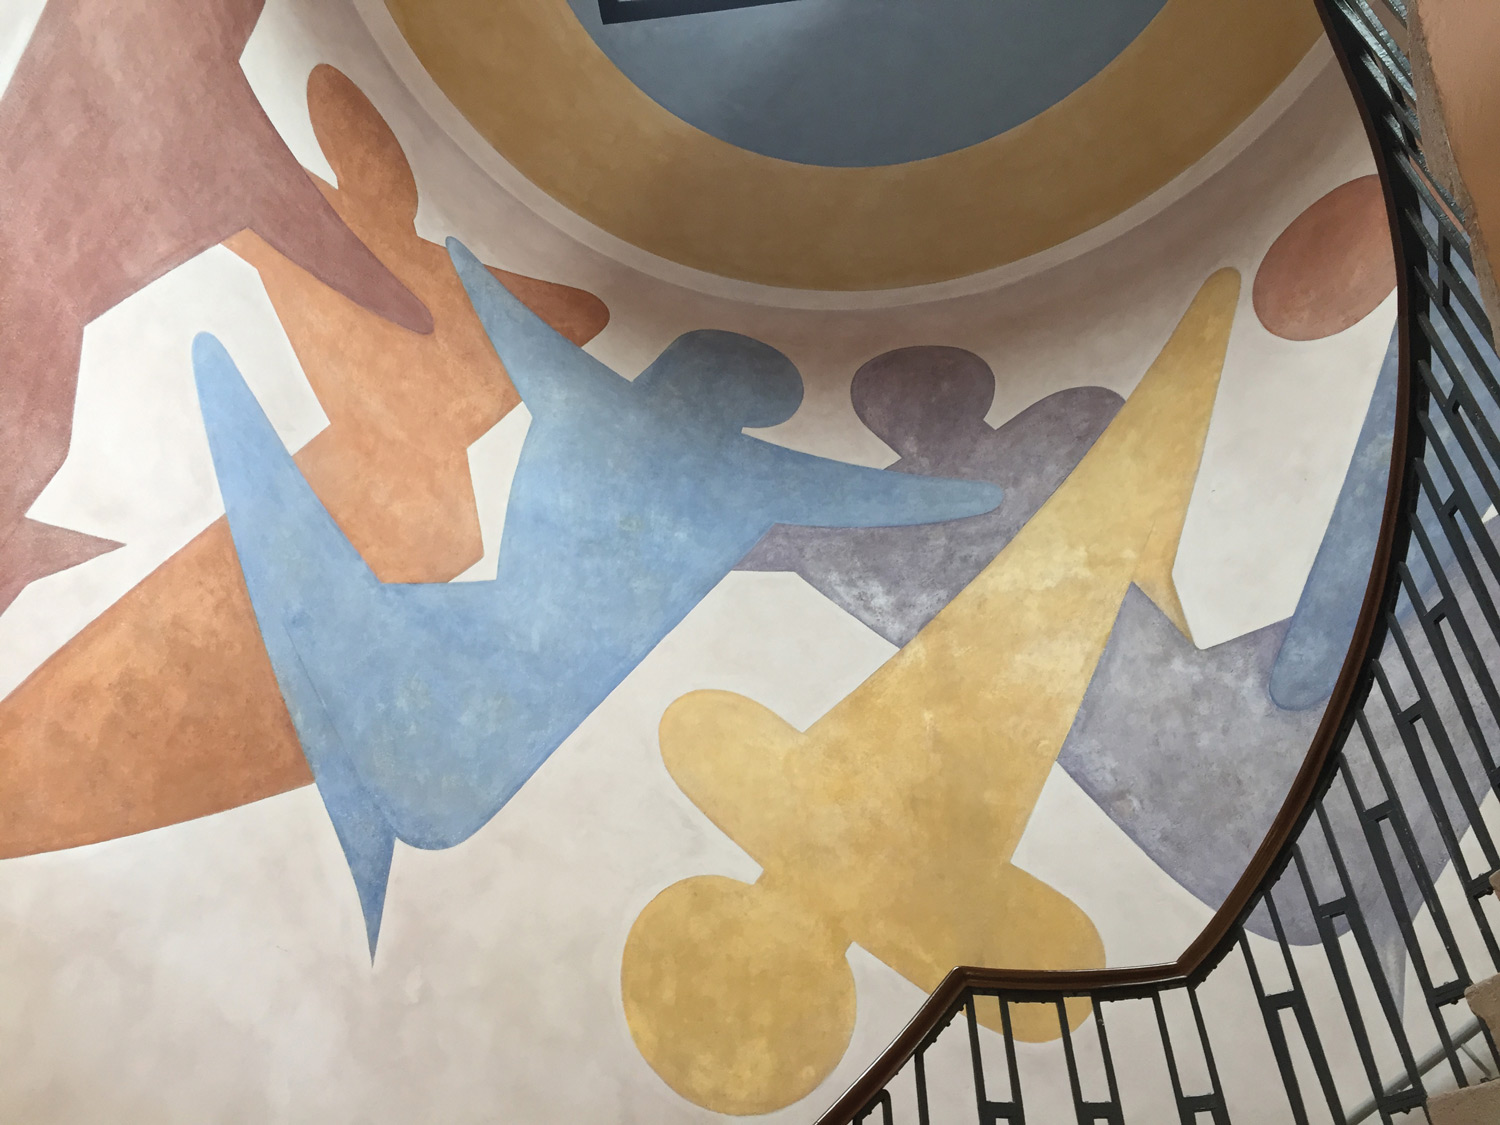 Staircase painting at Bauhaus University in Weimar. (Paloma Villaverde de Rico)